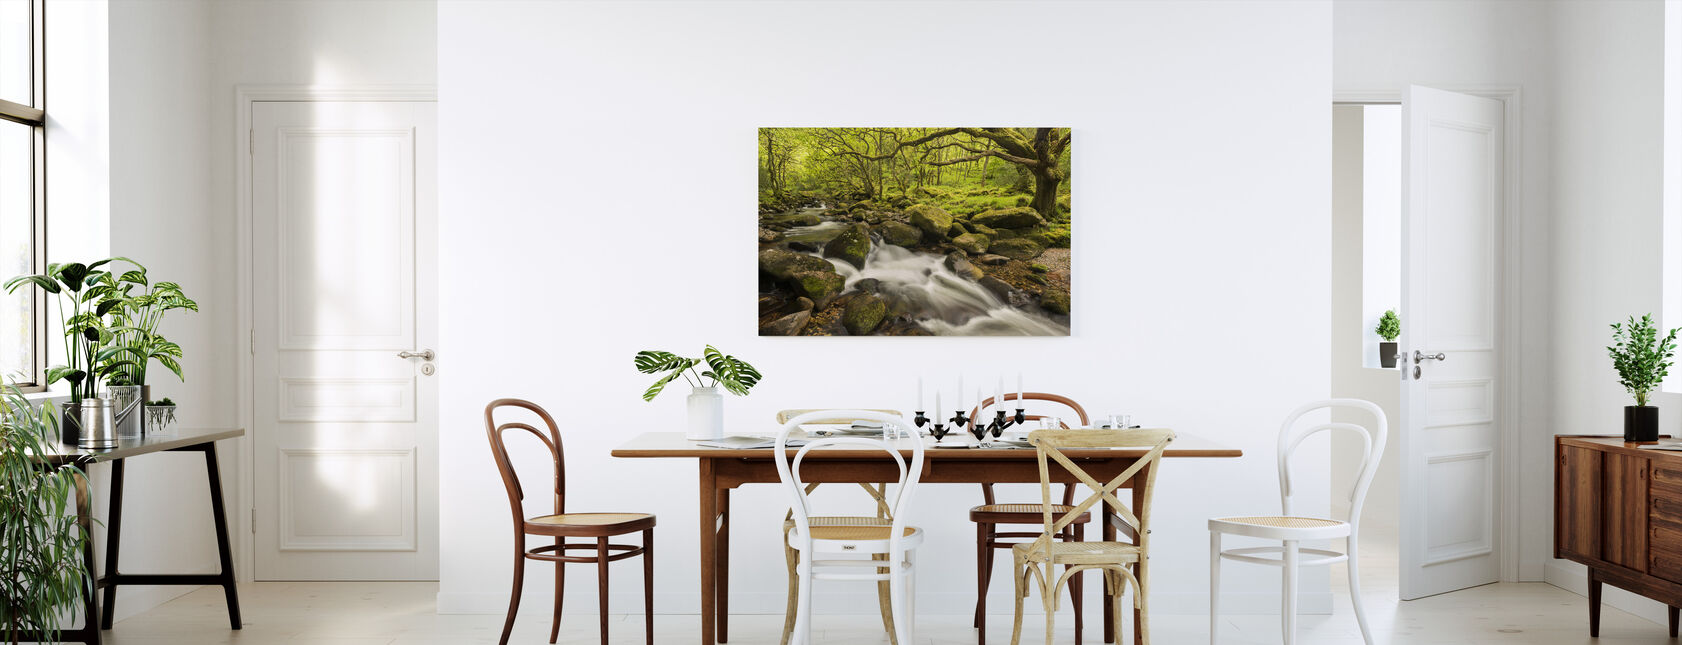 River Plym in Dewerstone Wood, Devon, England, UK - Canvas print - Kitchen